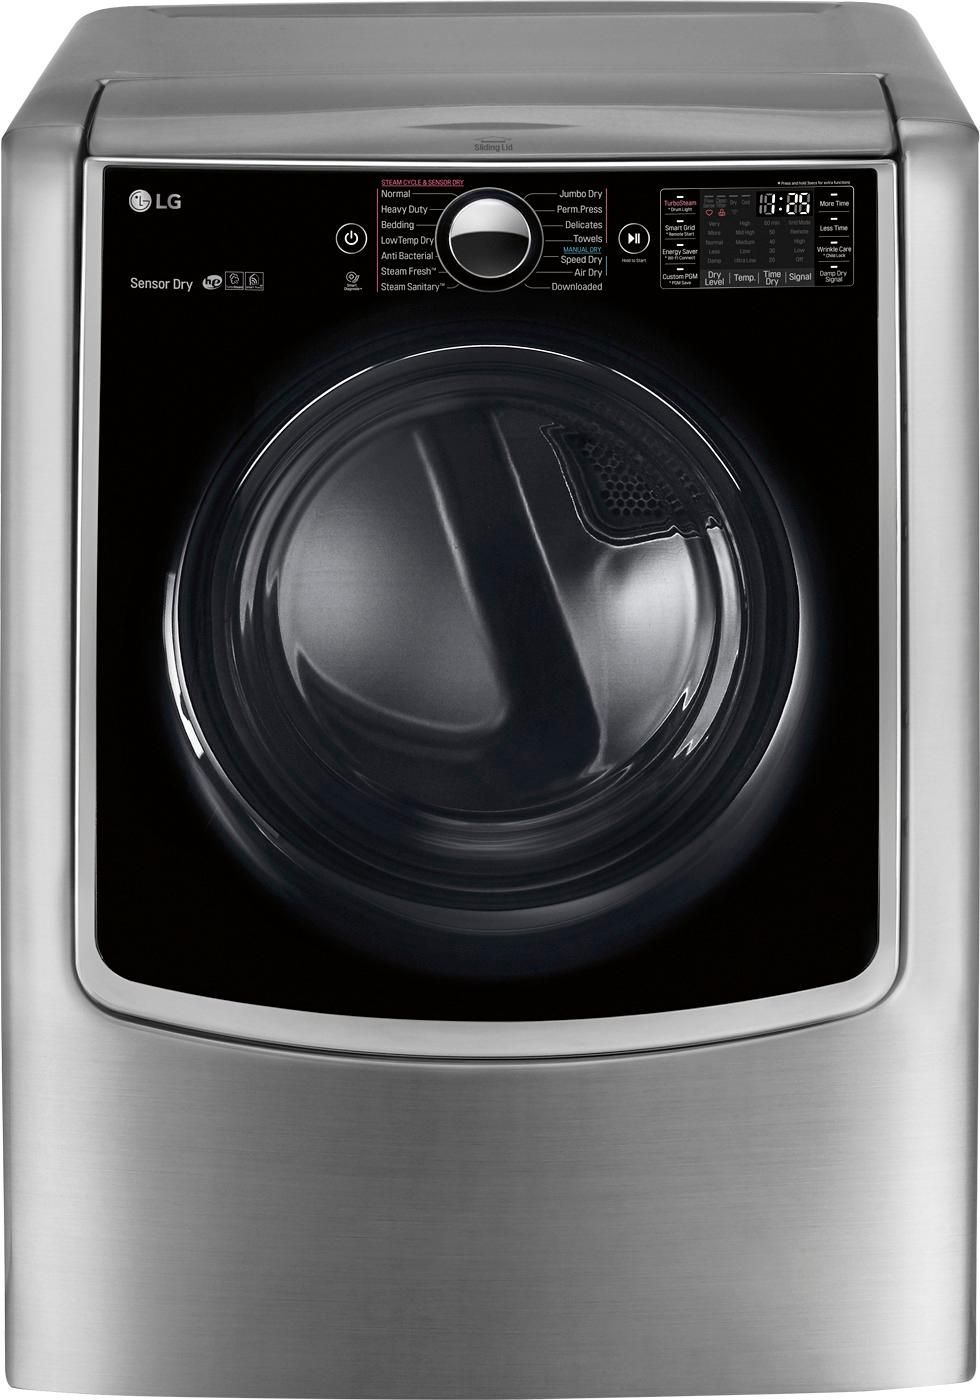 Lg 9 0 Cu Ft 14 Cycle Smart Wi Fi Electric Steamdryer Sensor Dry And Turbosteam Graphite Steel Dlex9000v With Images Electric Dryers Cool Things To Buy Gas Dryer